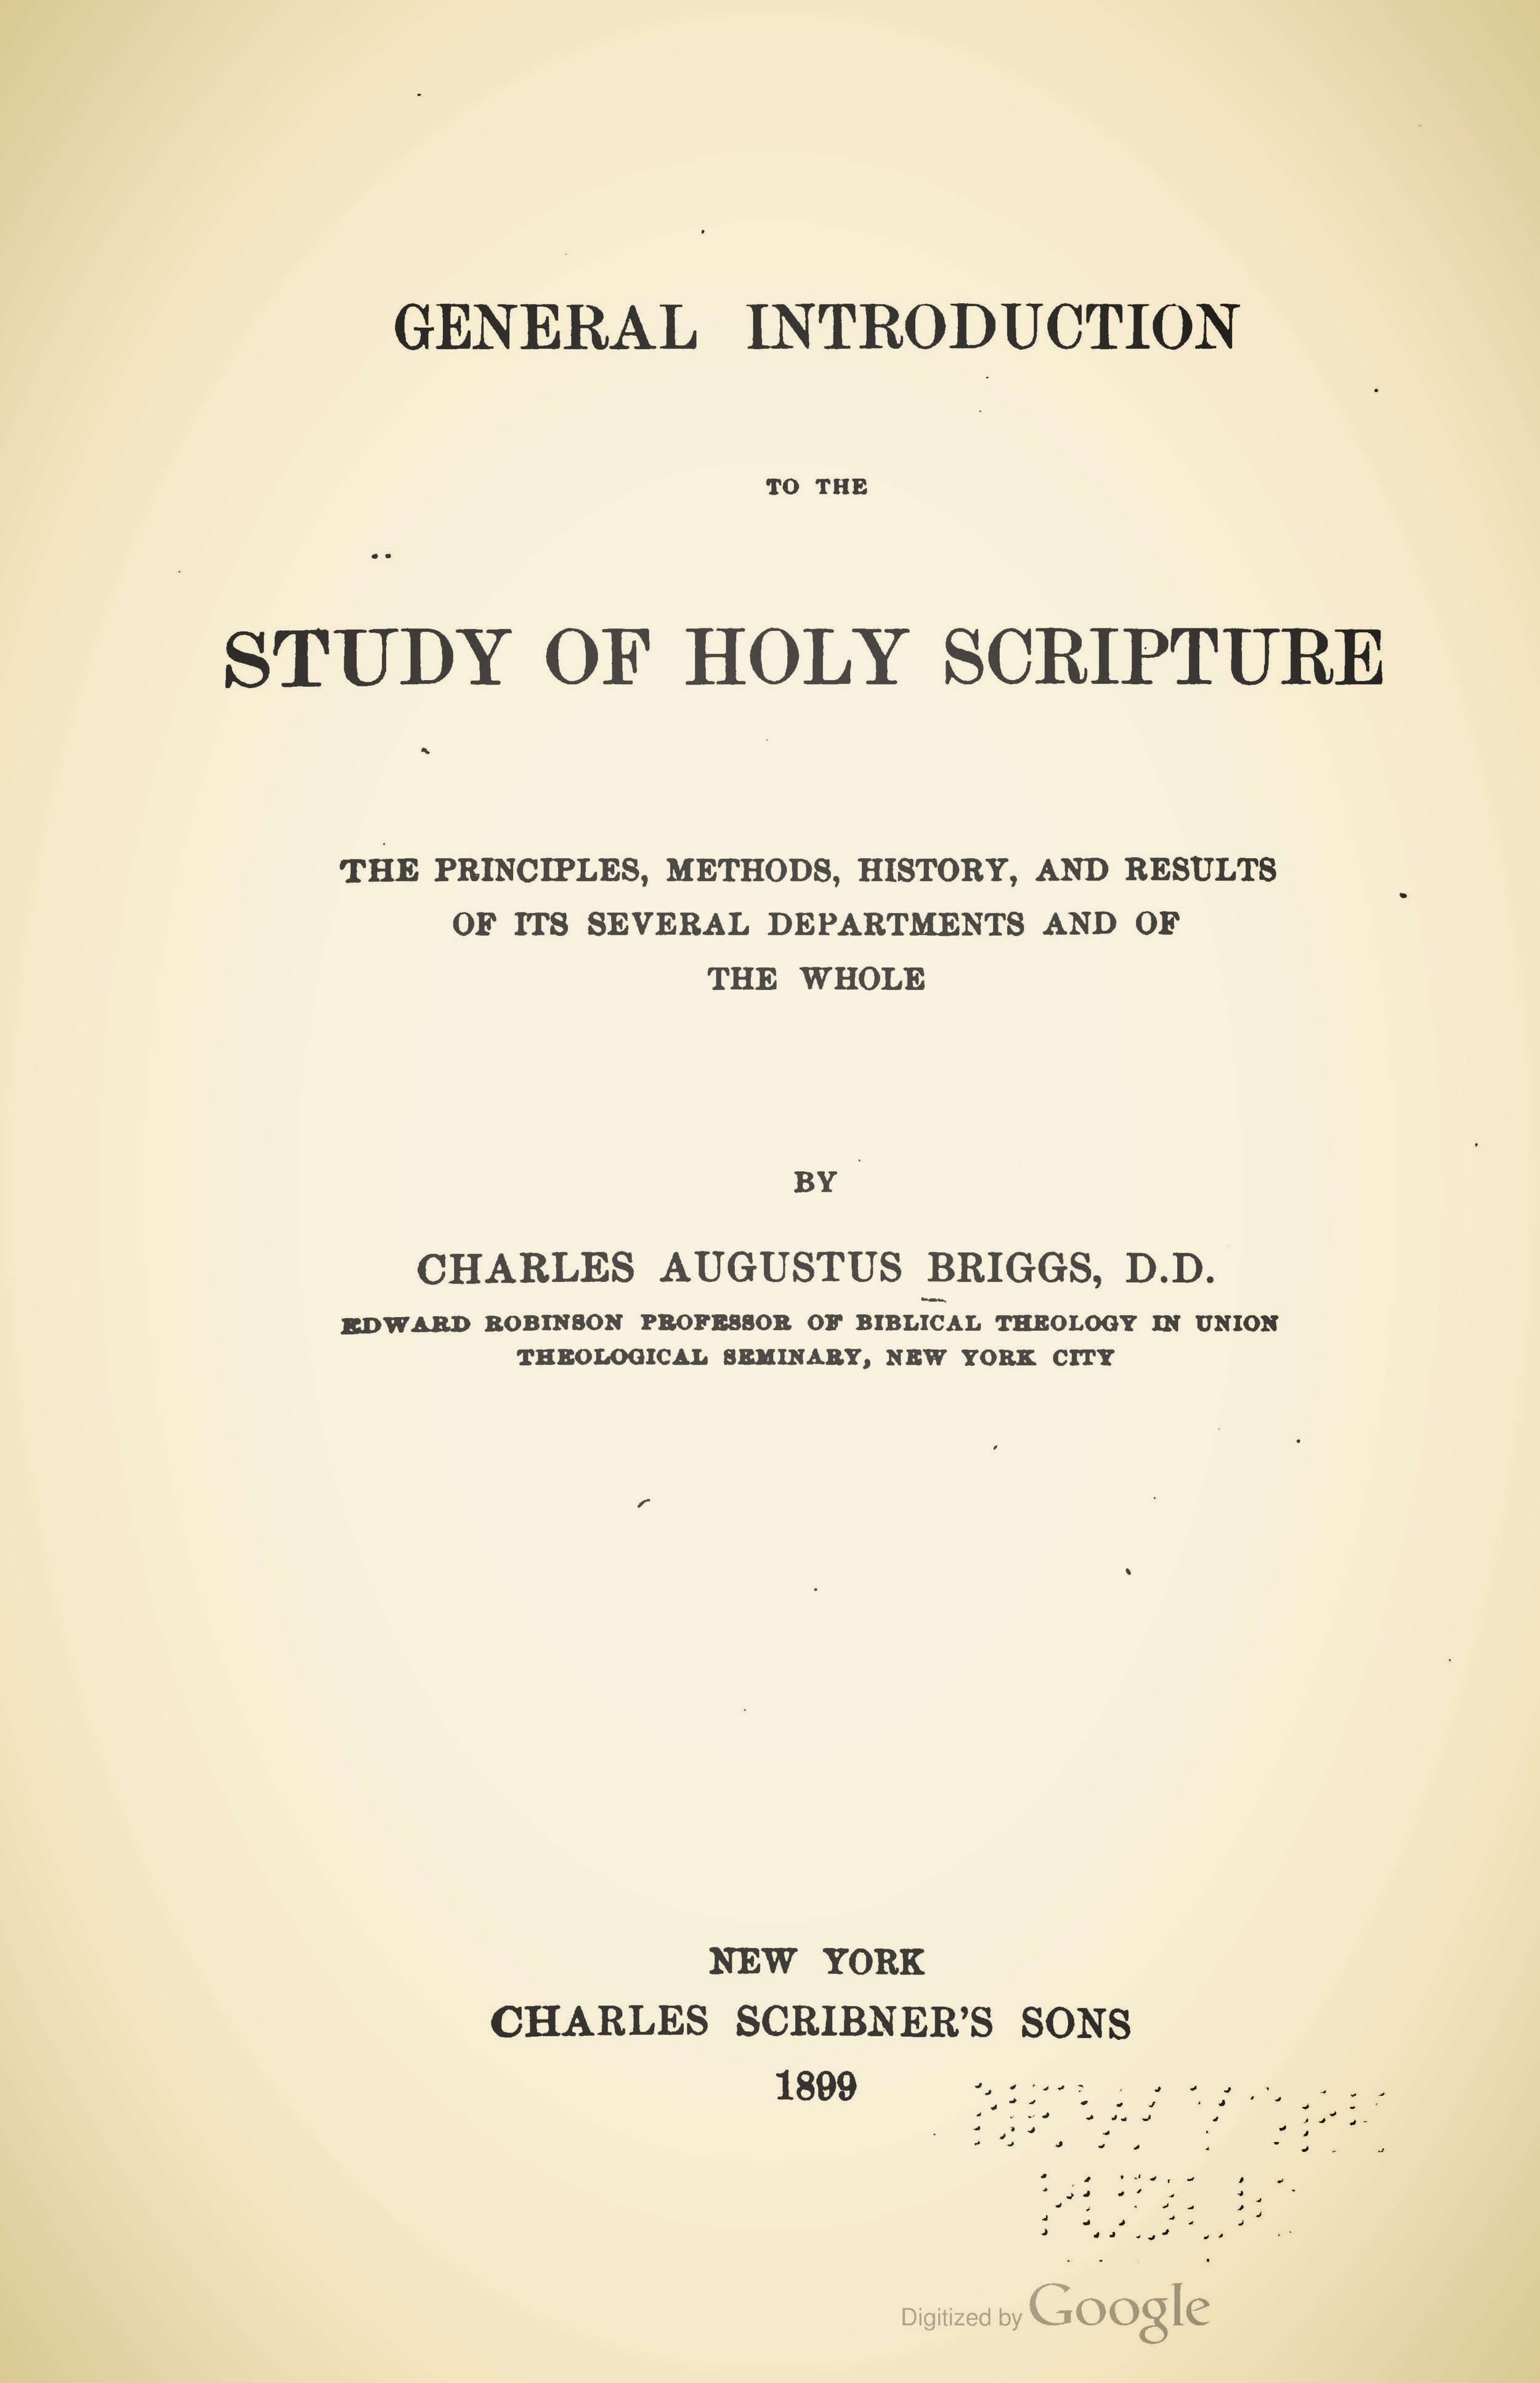 Briggs, Charles Augustus, General Introduction to the Study of Holy Scripture Title Page.jpg